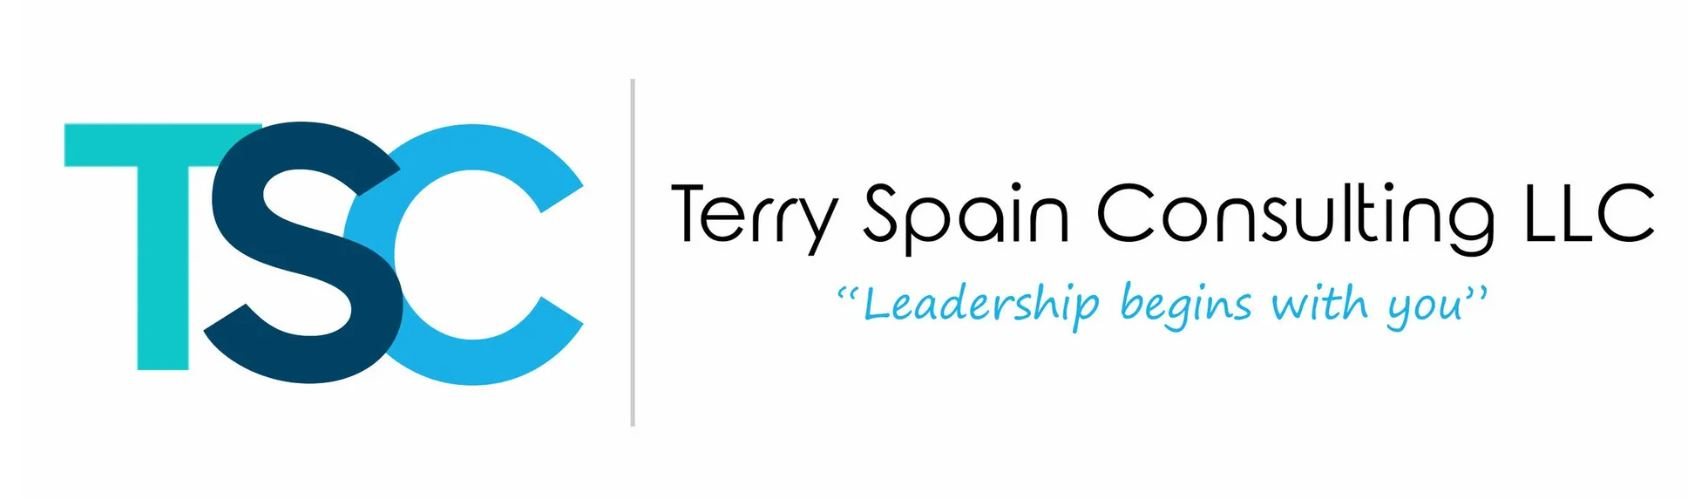 Terry Spain Consulting